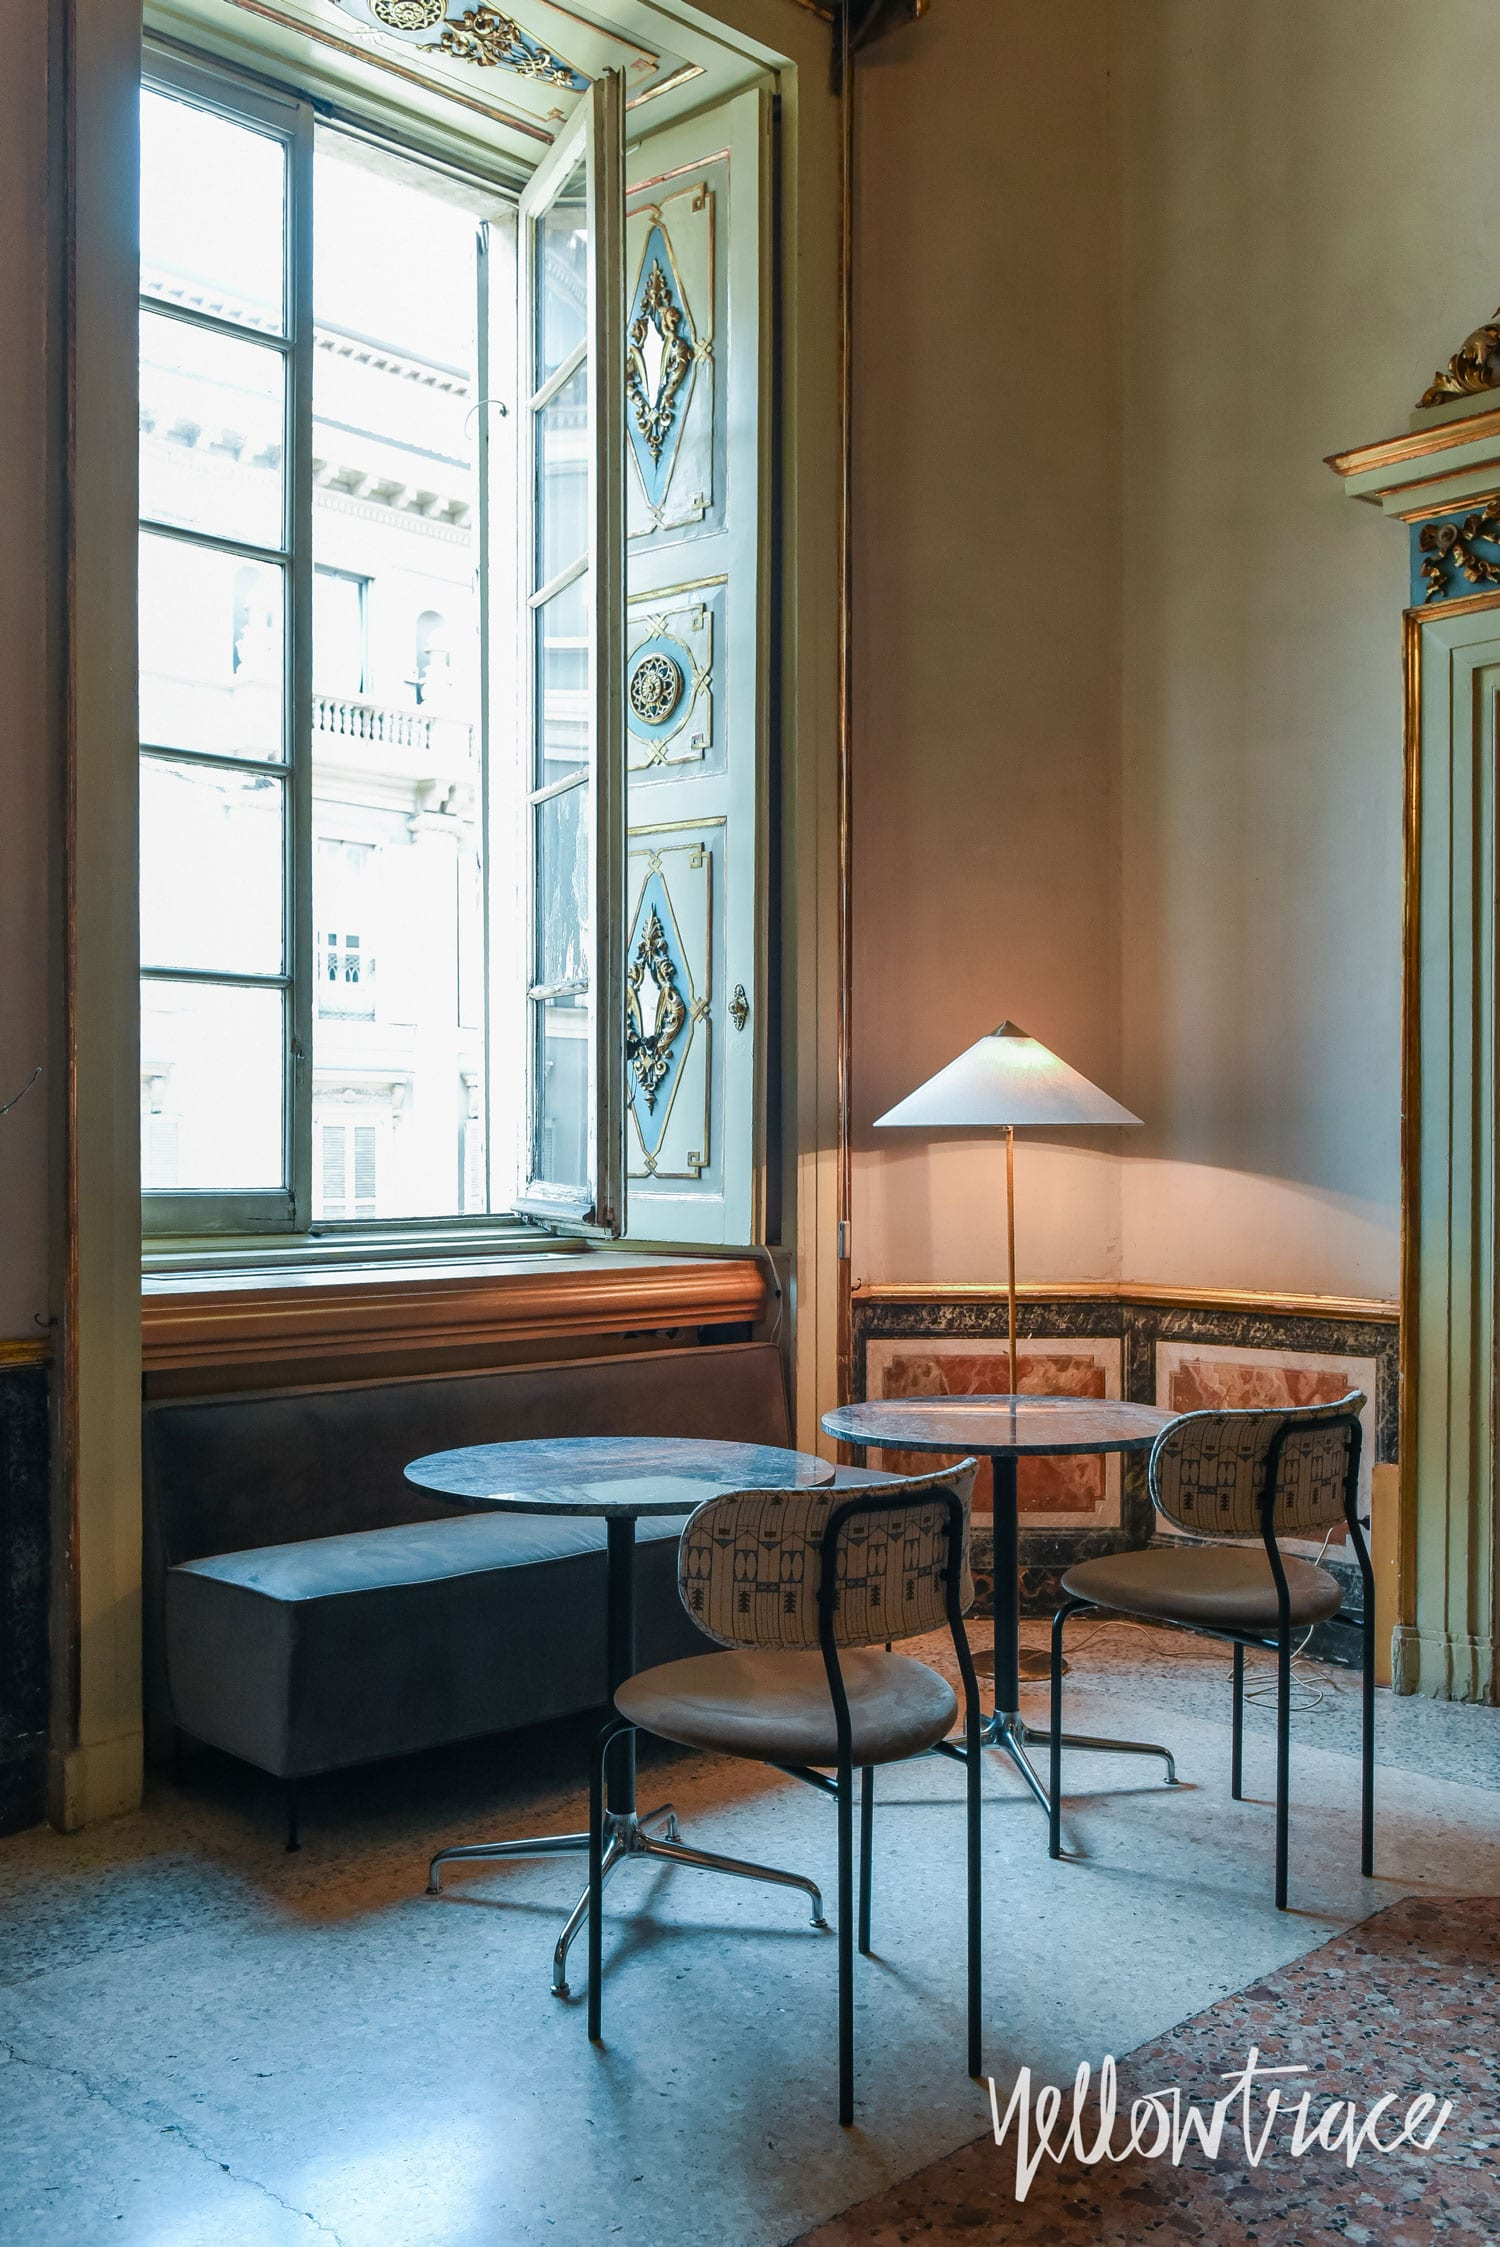 Milan Design Week 2018 Highlights, Gubi installation at Palazzo Serbelloni. Photo © Nick Hughes | #Milantrace2018